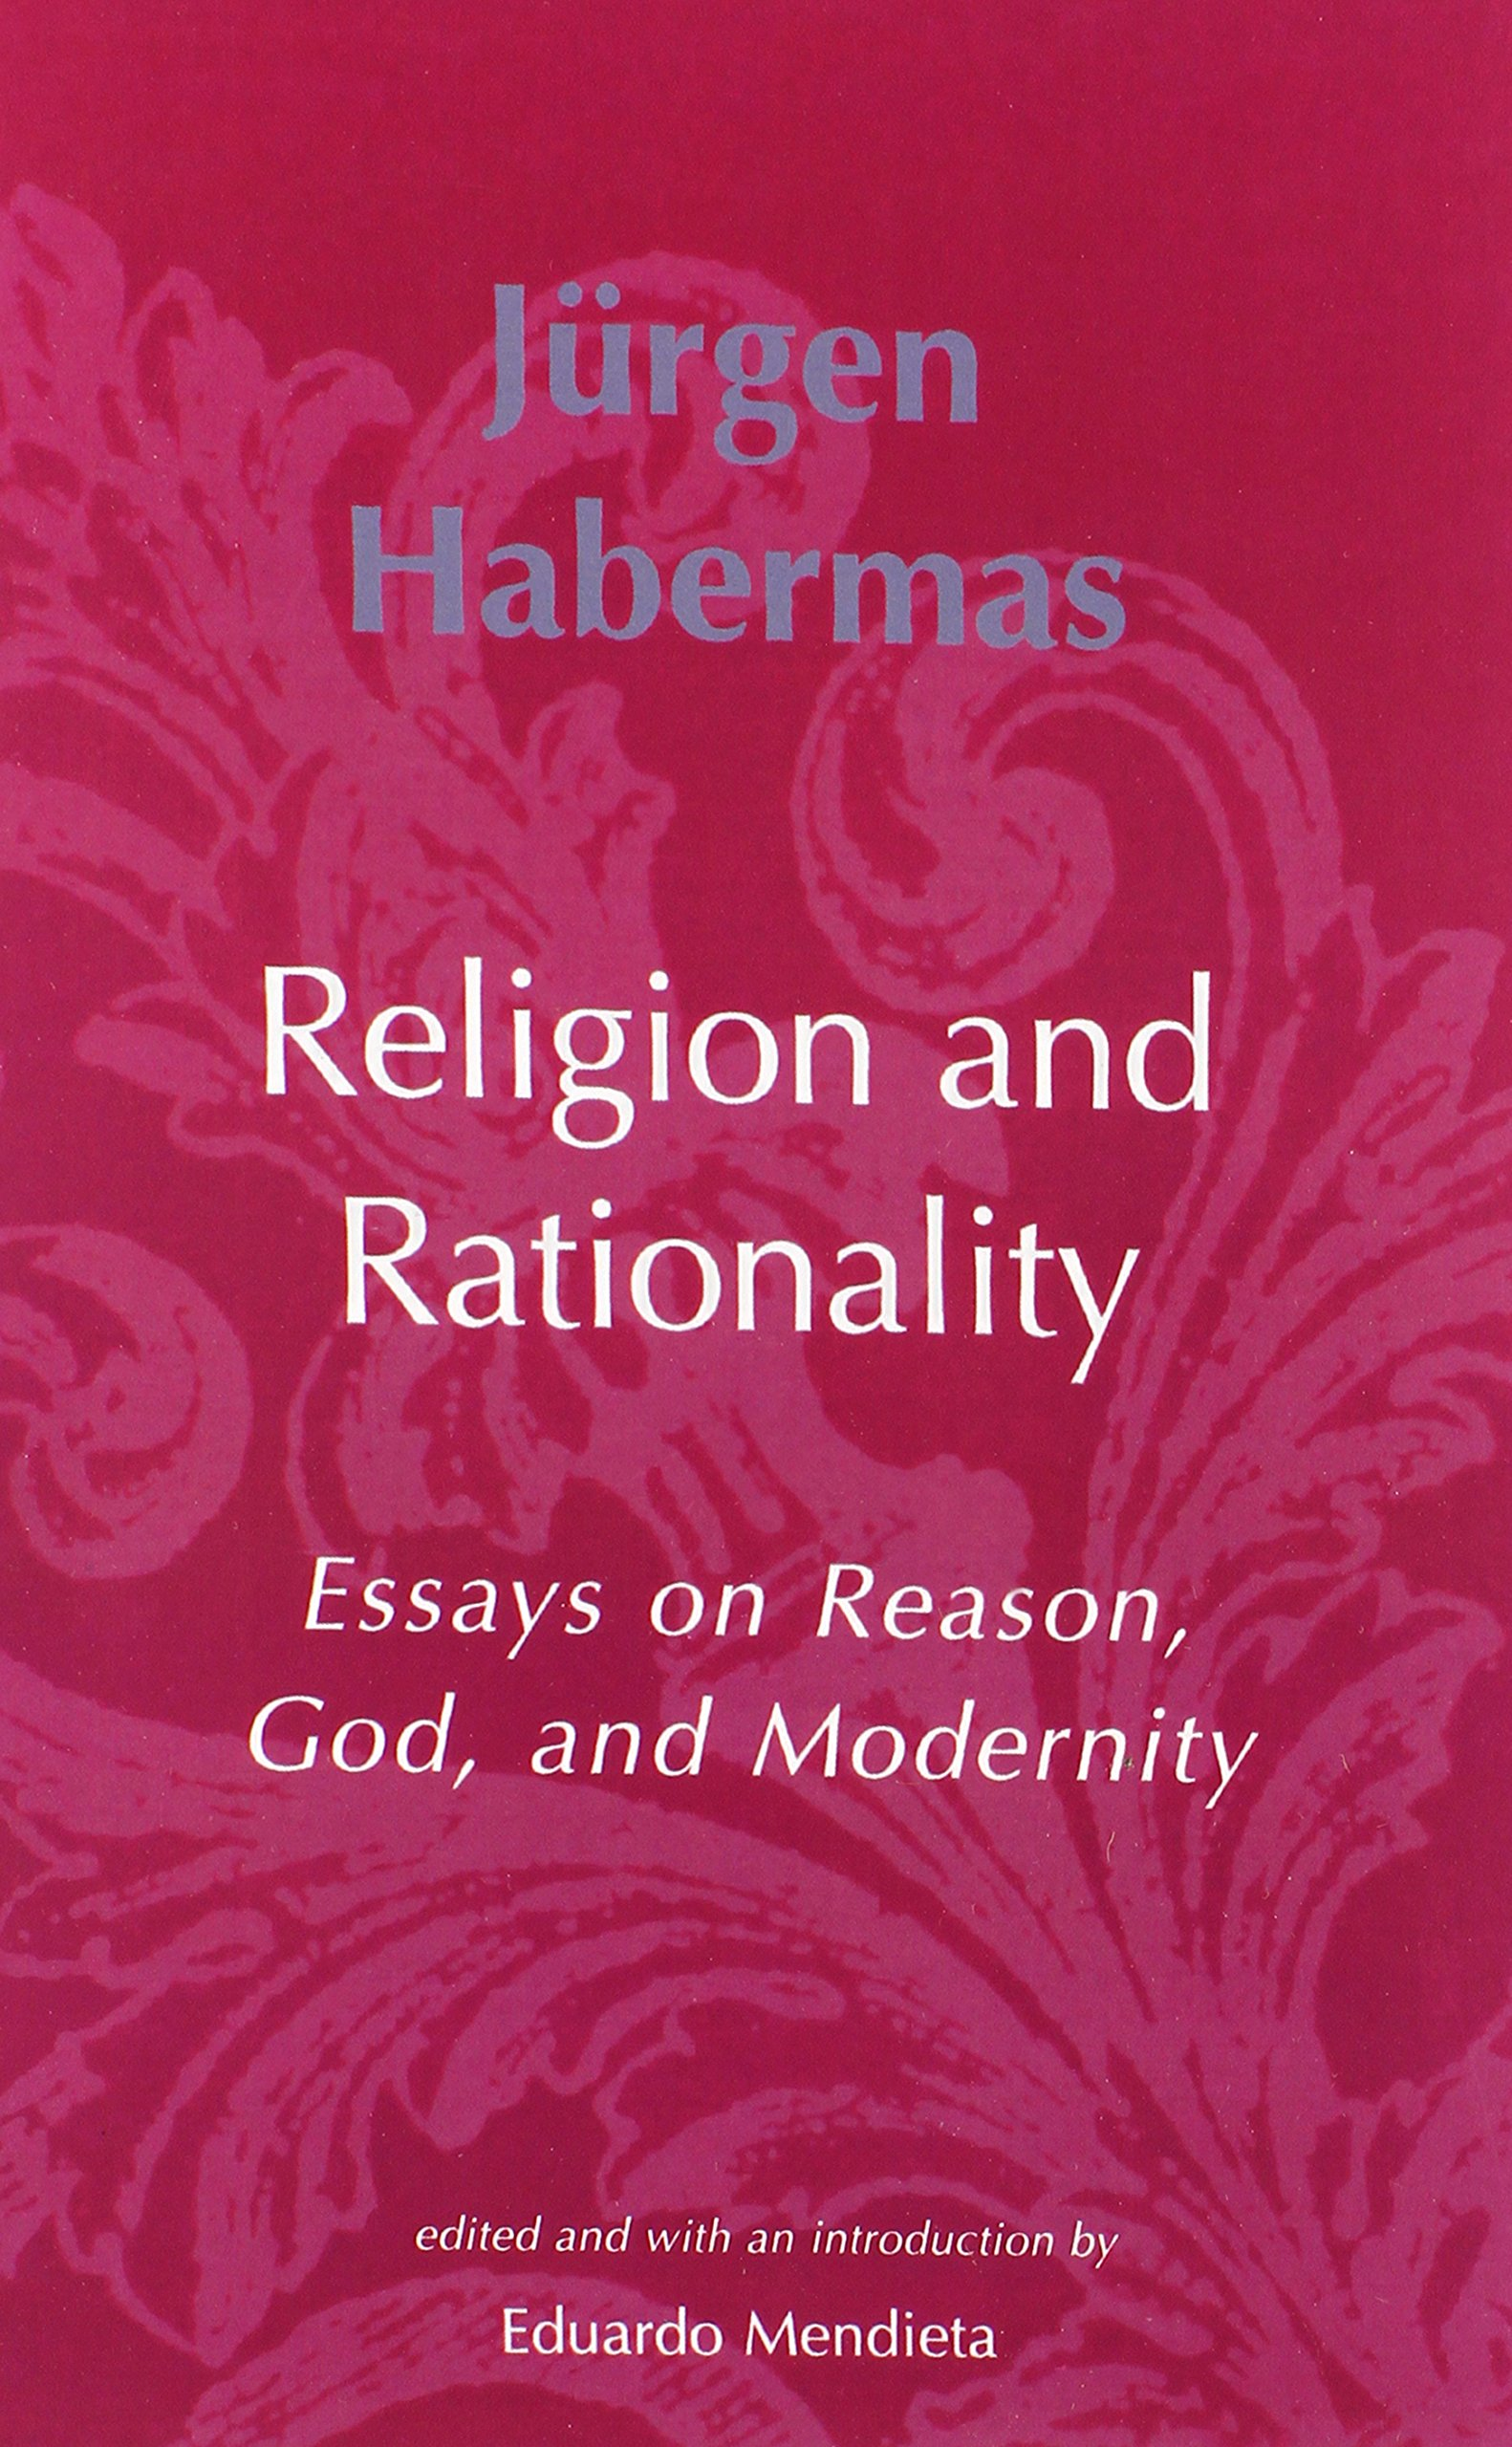 religion and rationality essays on reason god and modernity religion and rationality essays on reason god and modernity studies in contemporary german social thought juumlrgen habermas 9780262582162 com